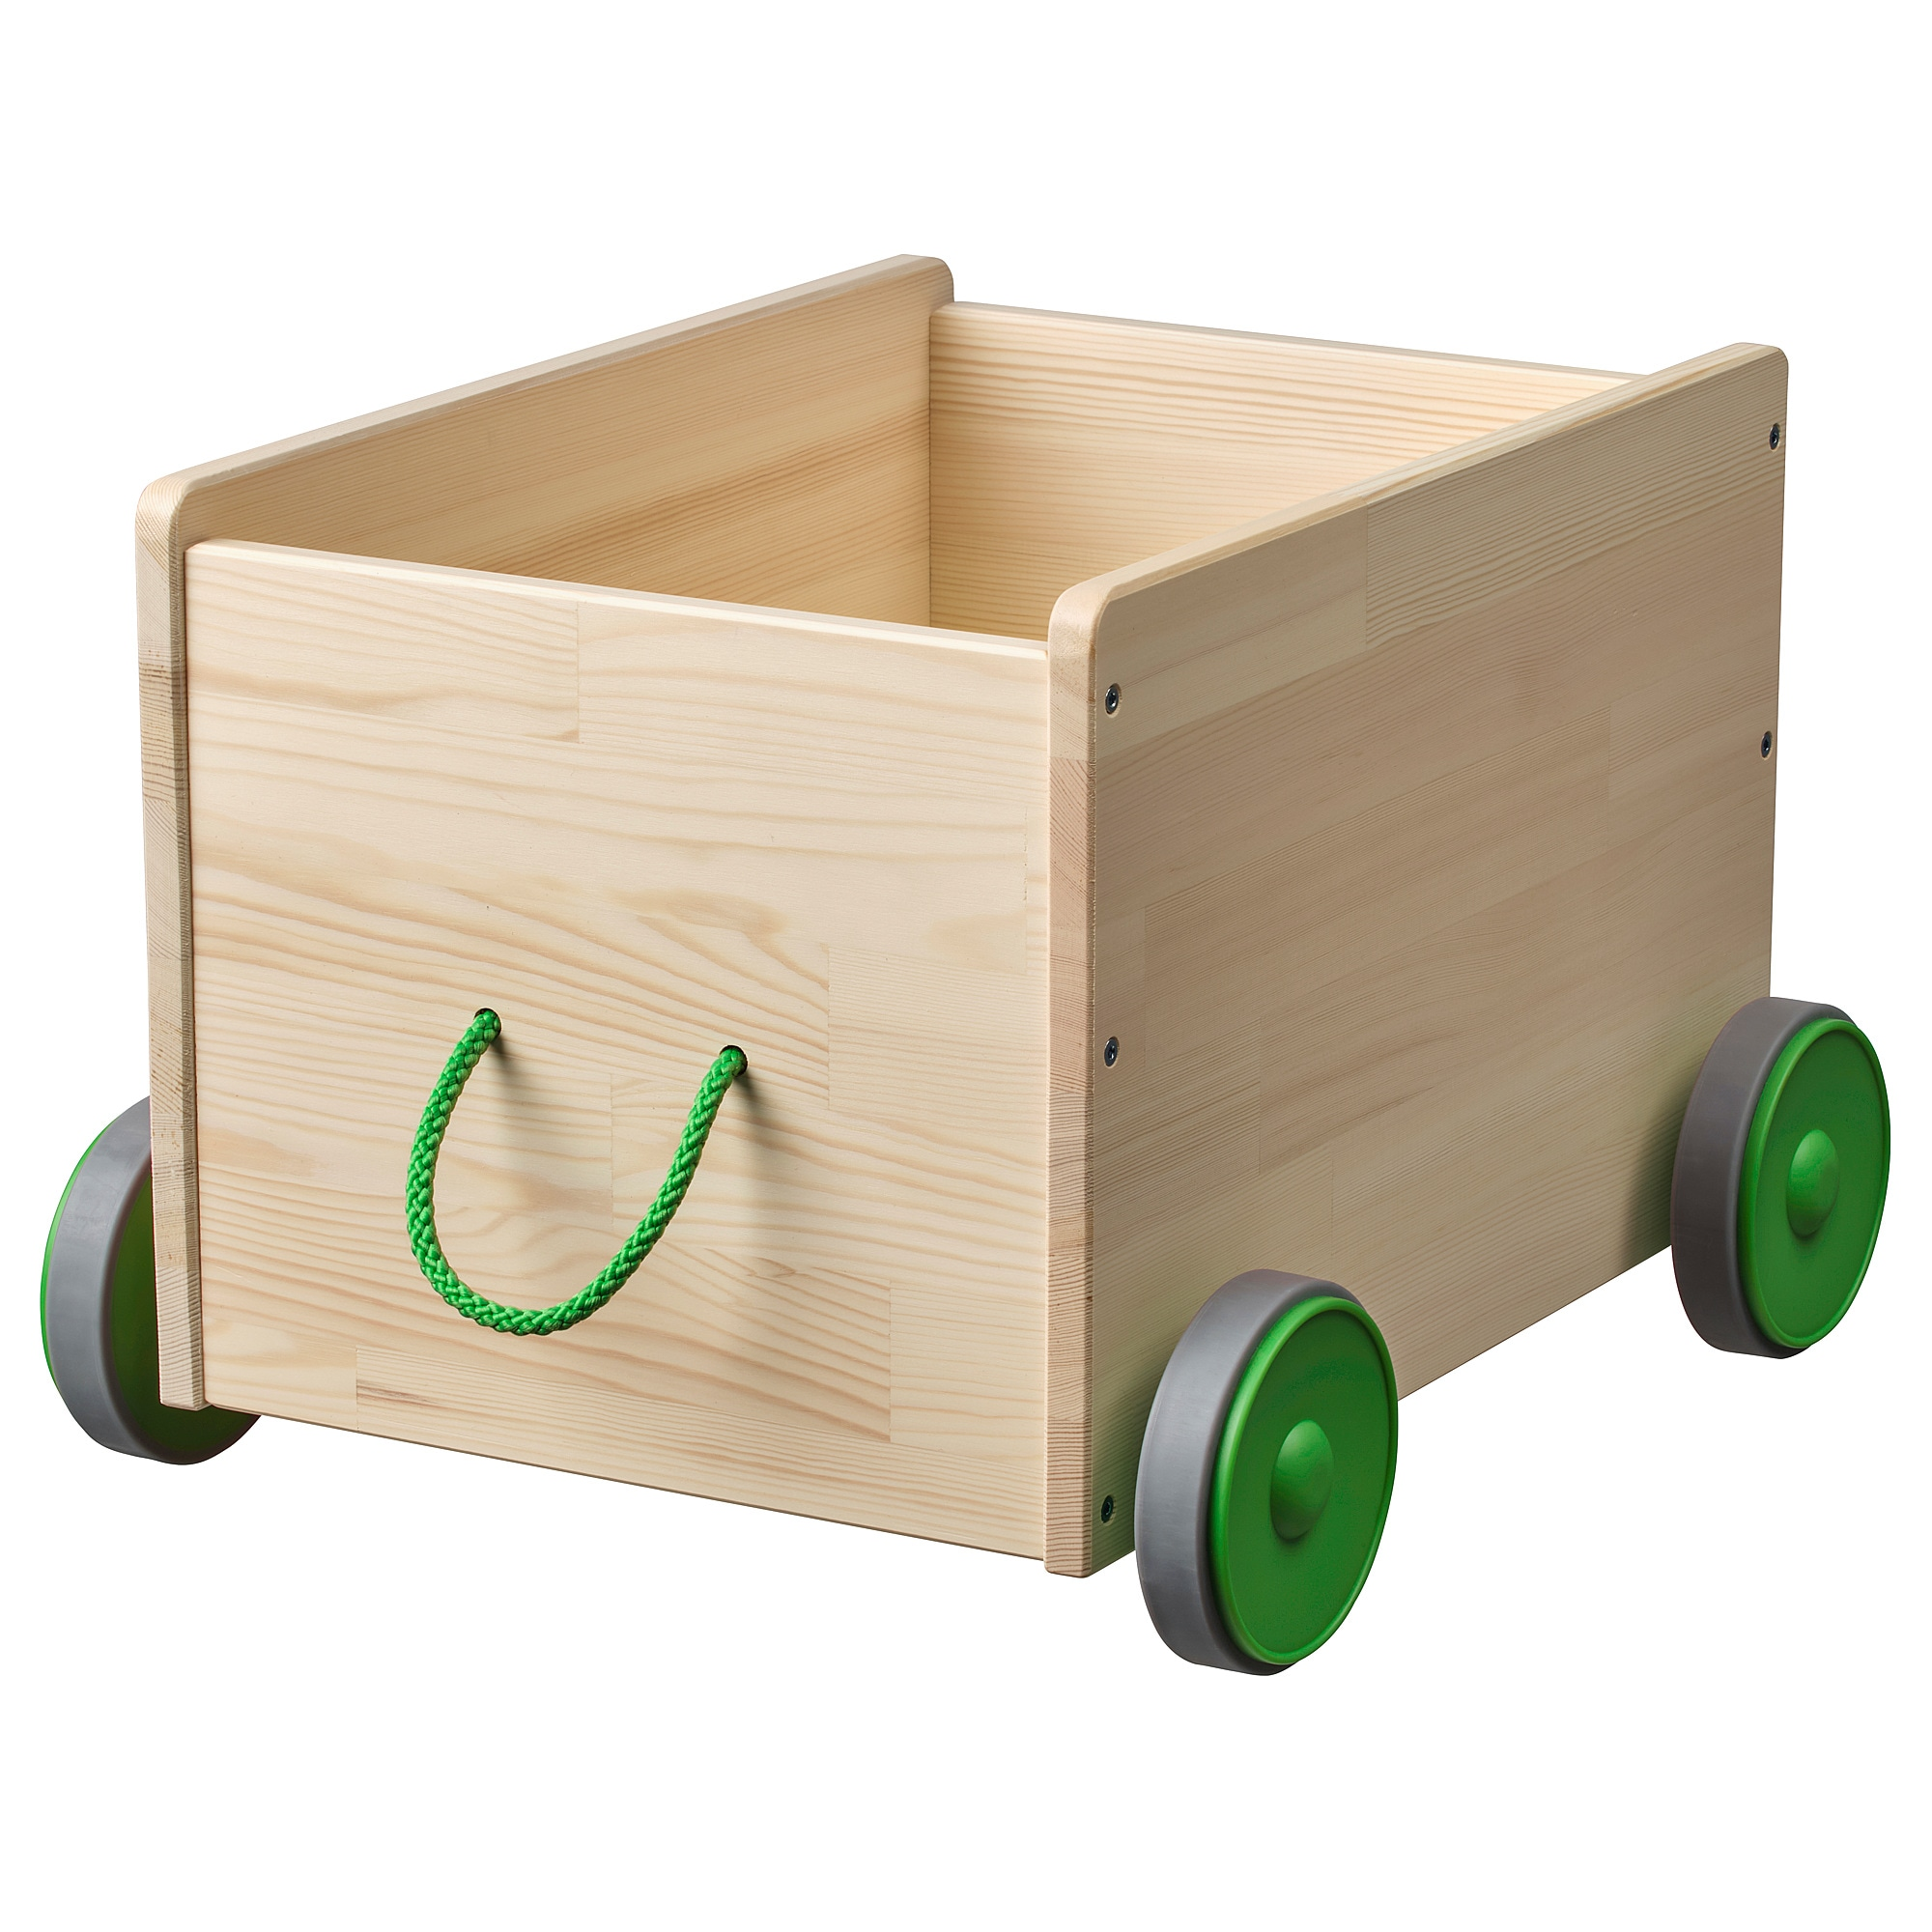 flisat toy storage with casters,